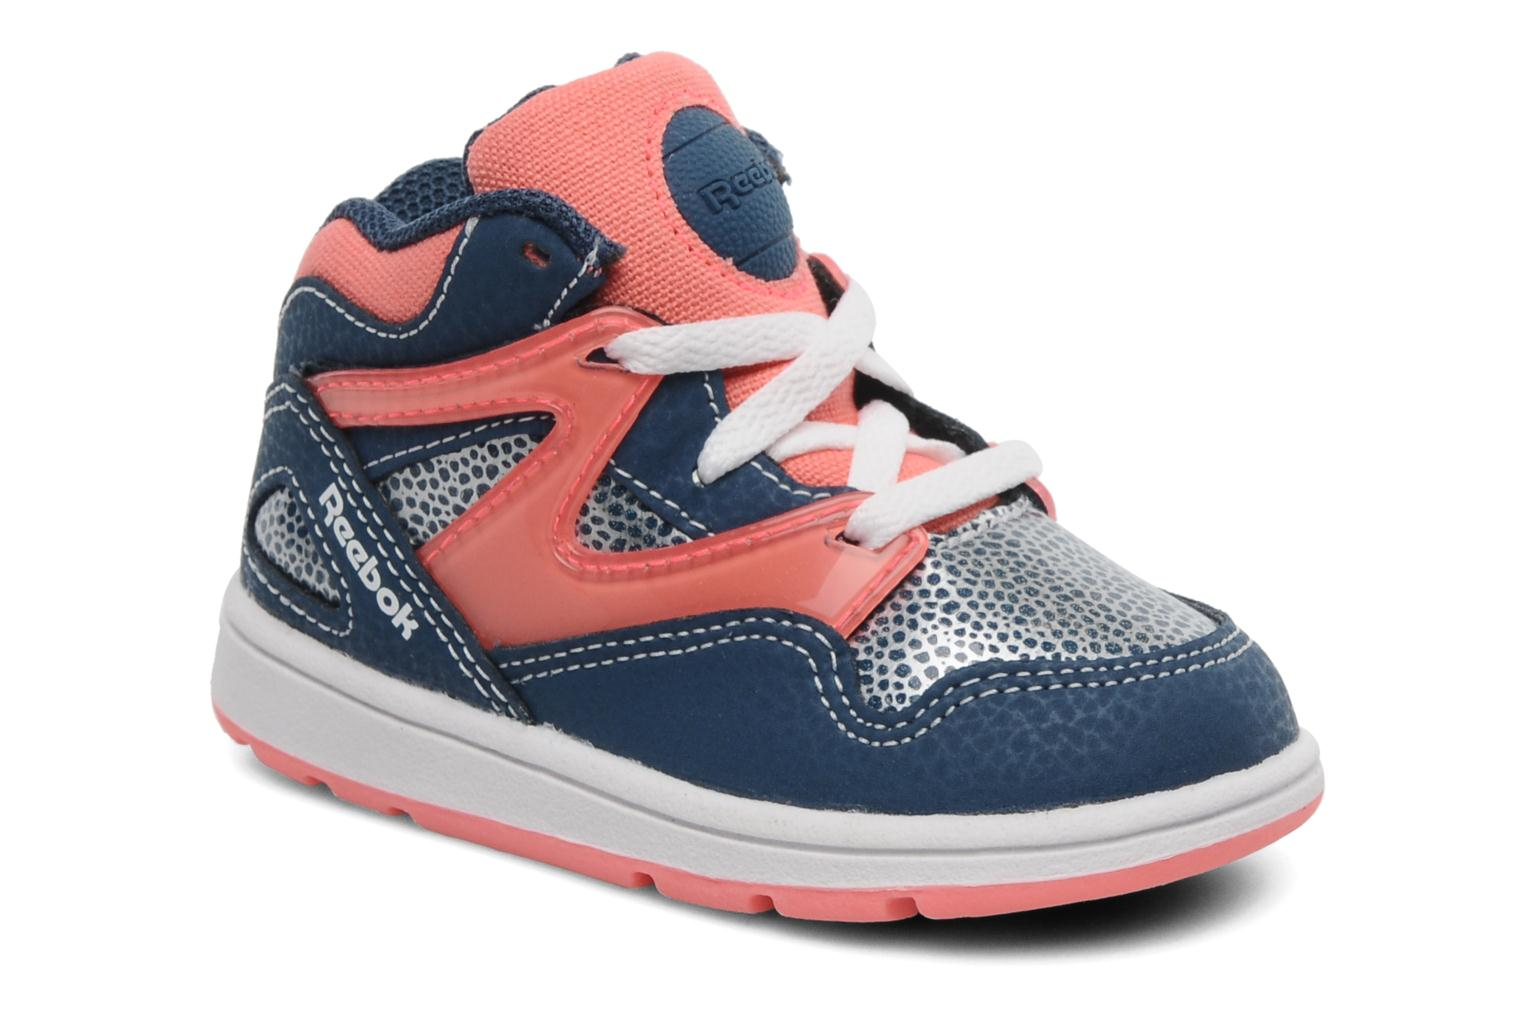 reebok versa pump omni lite trainers in blue at 167179. Black Bedroom Furniture Sets. Home Design Ideas